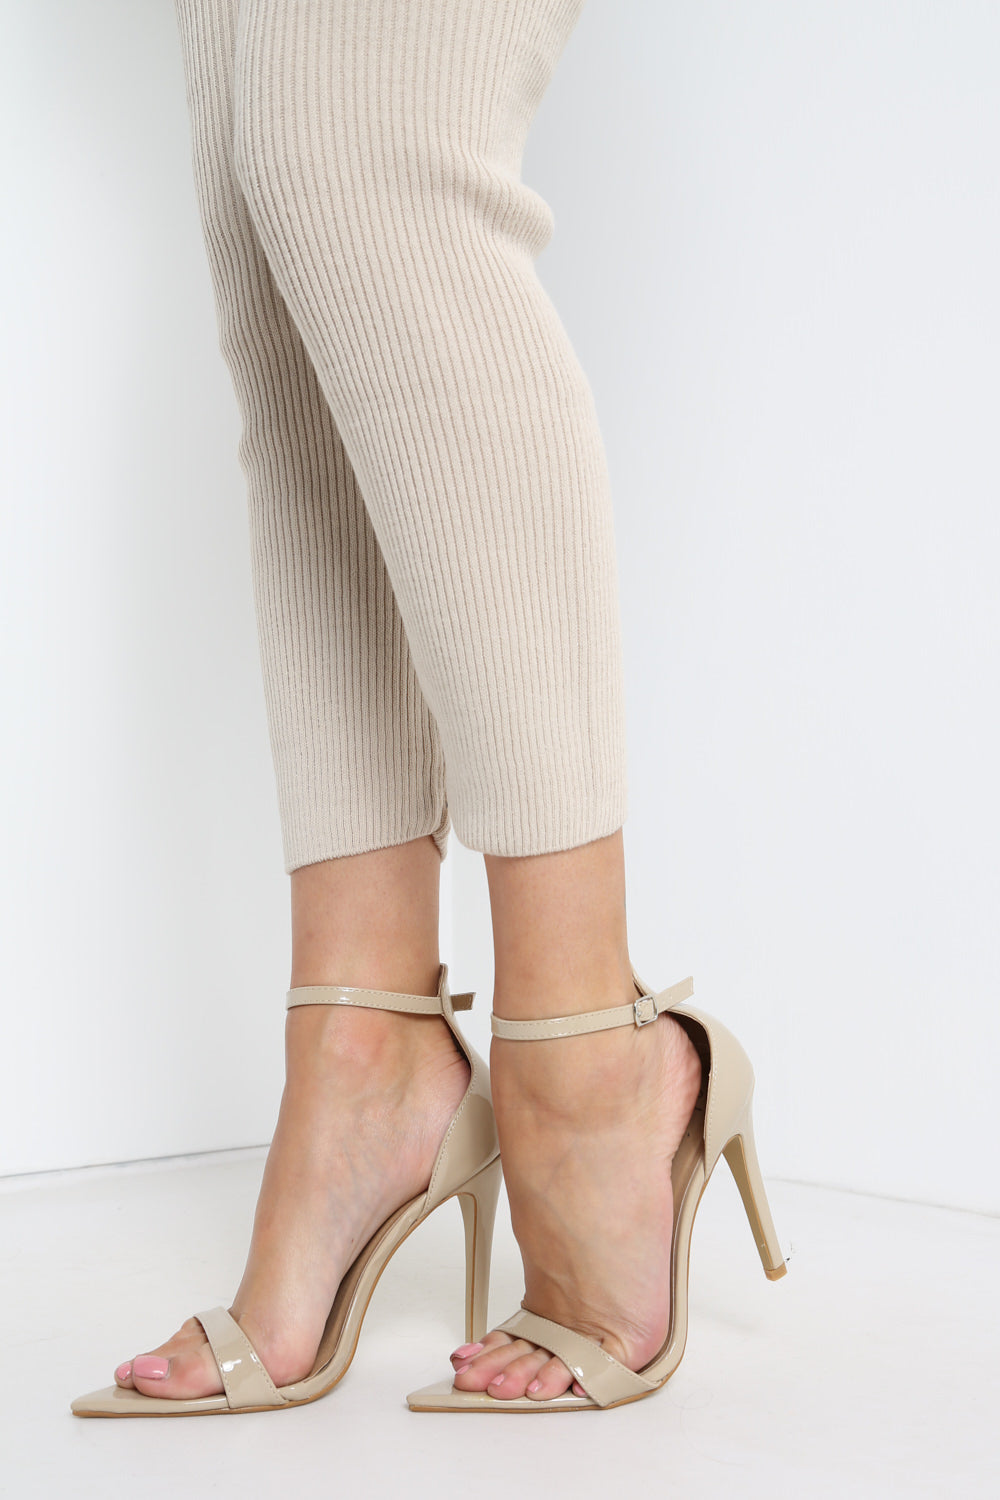 Nude Ankle Strap PatentPointed Heels